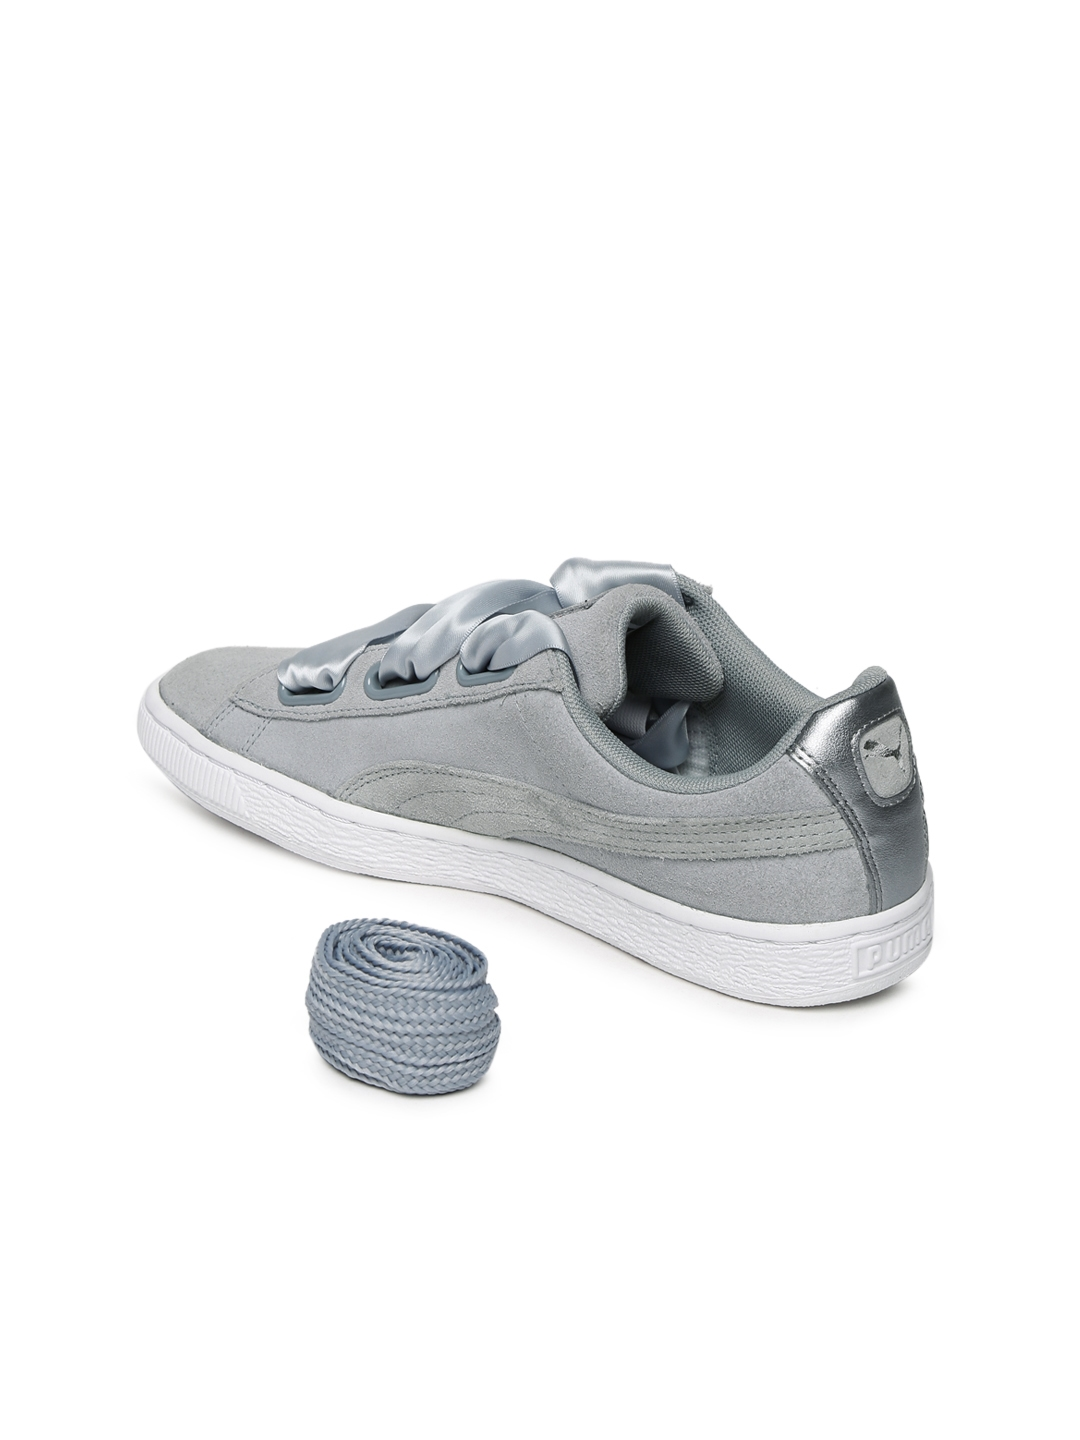 new concept 245e9 48c57 Buy Puma Women Grey Suede Heart Safari Sneakers - Casual ...